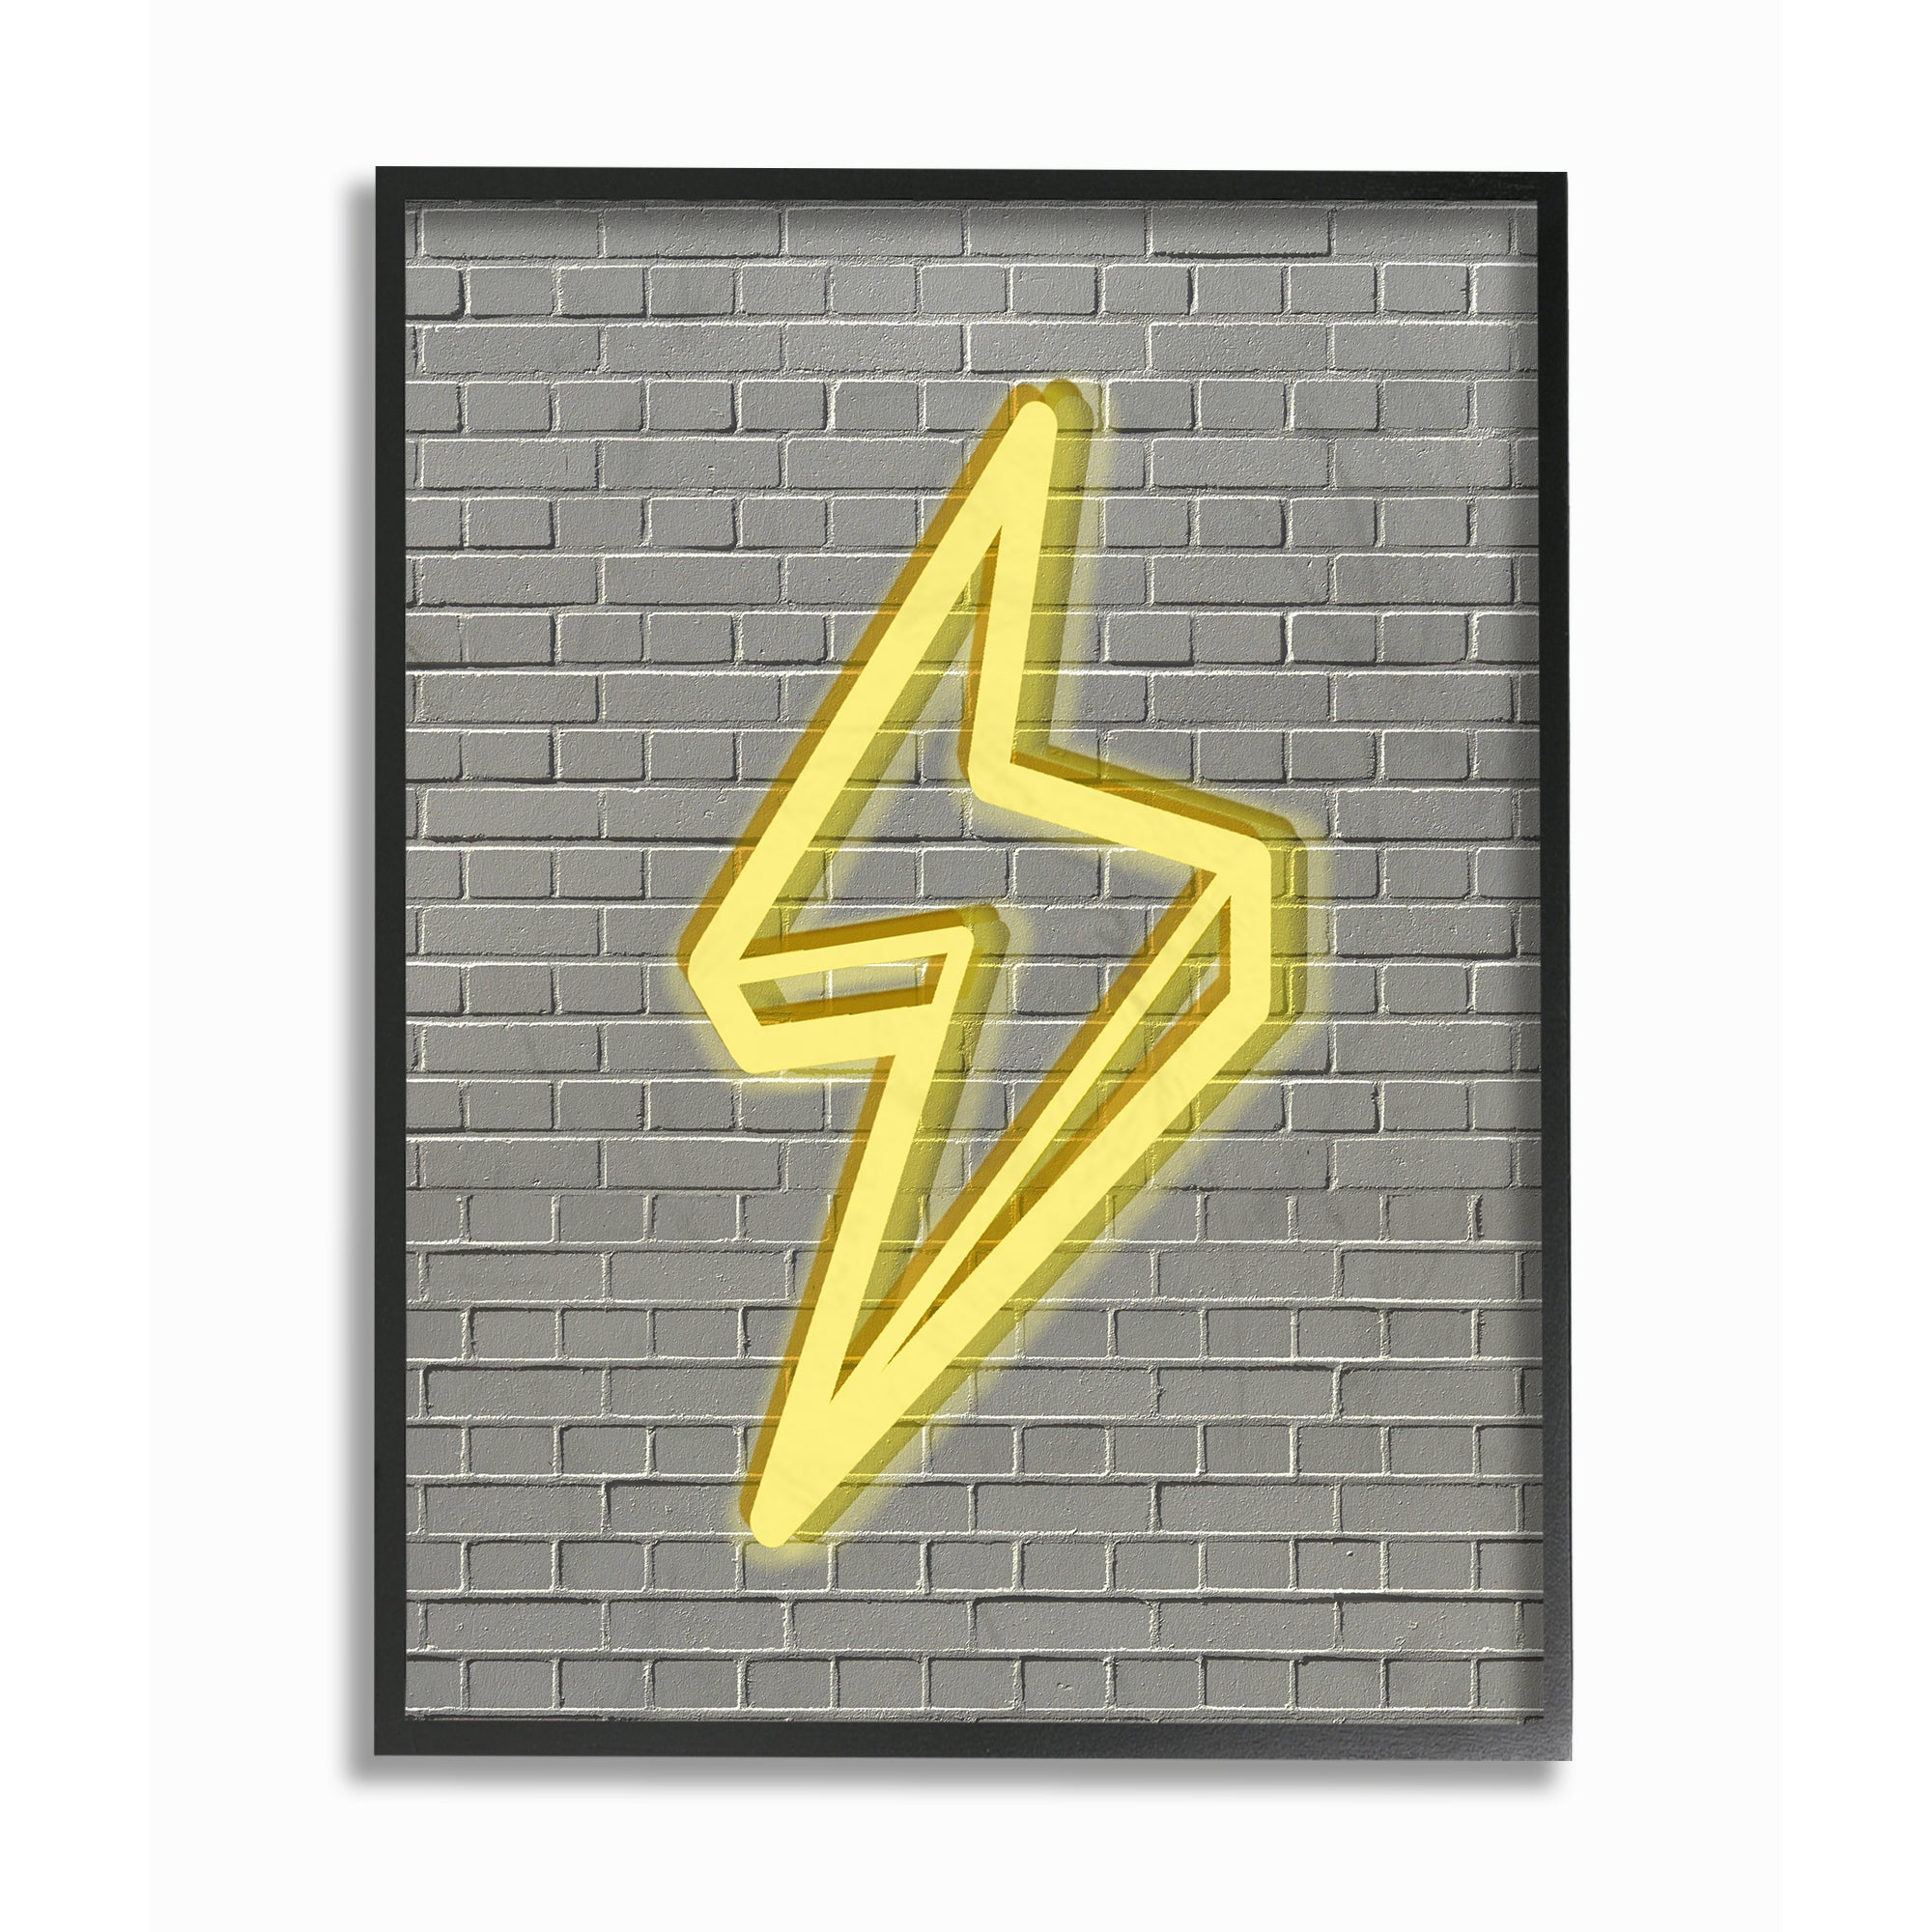 Shop \'Neon Lightning with Brick Background\' Framed Giclee Texturized ...